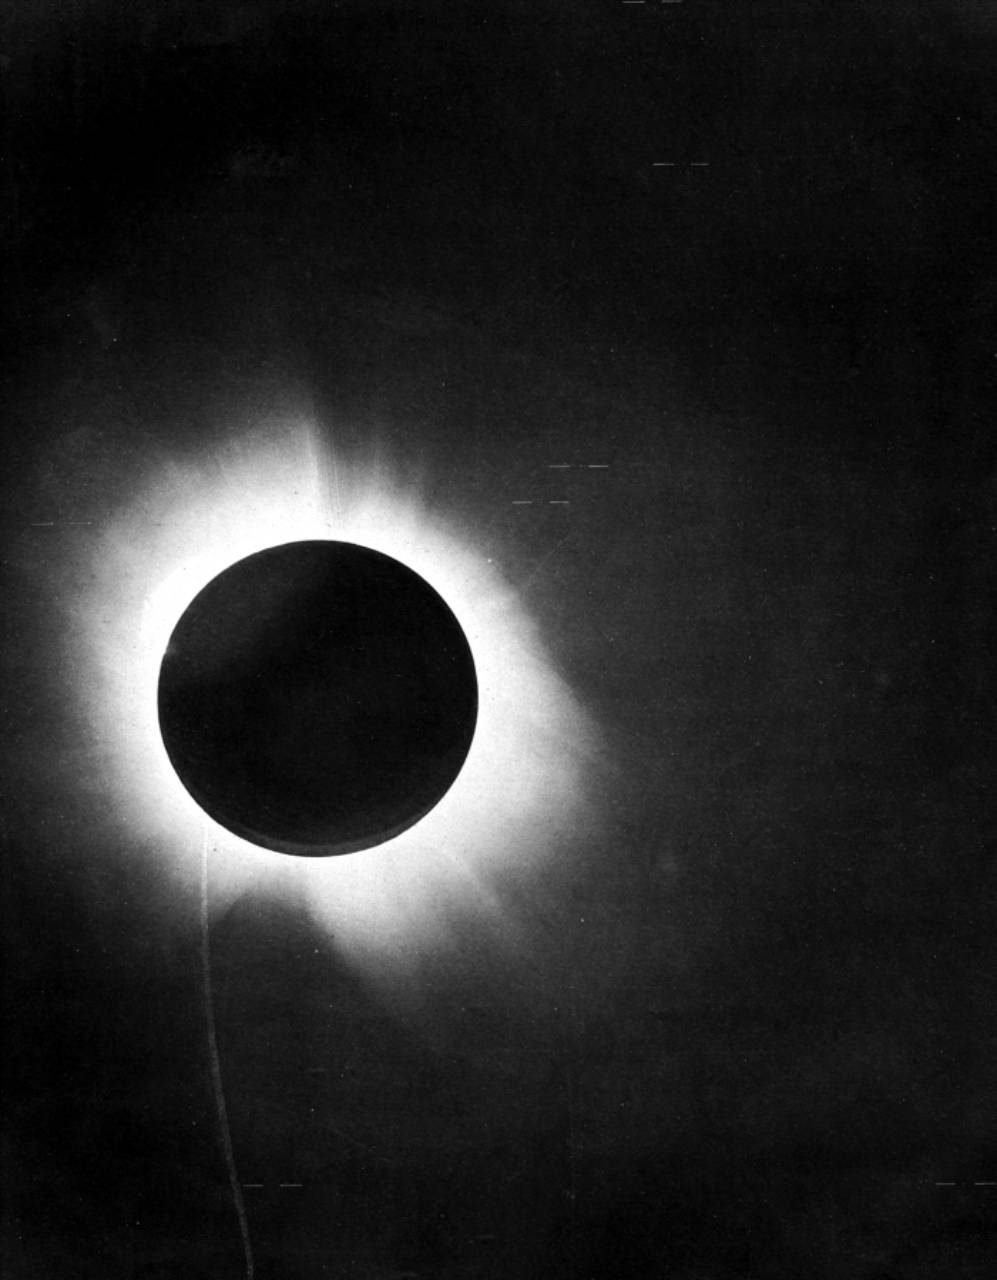 Eddington Plate of 1919 Eclipse